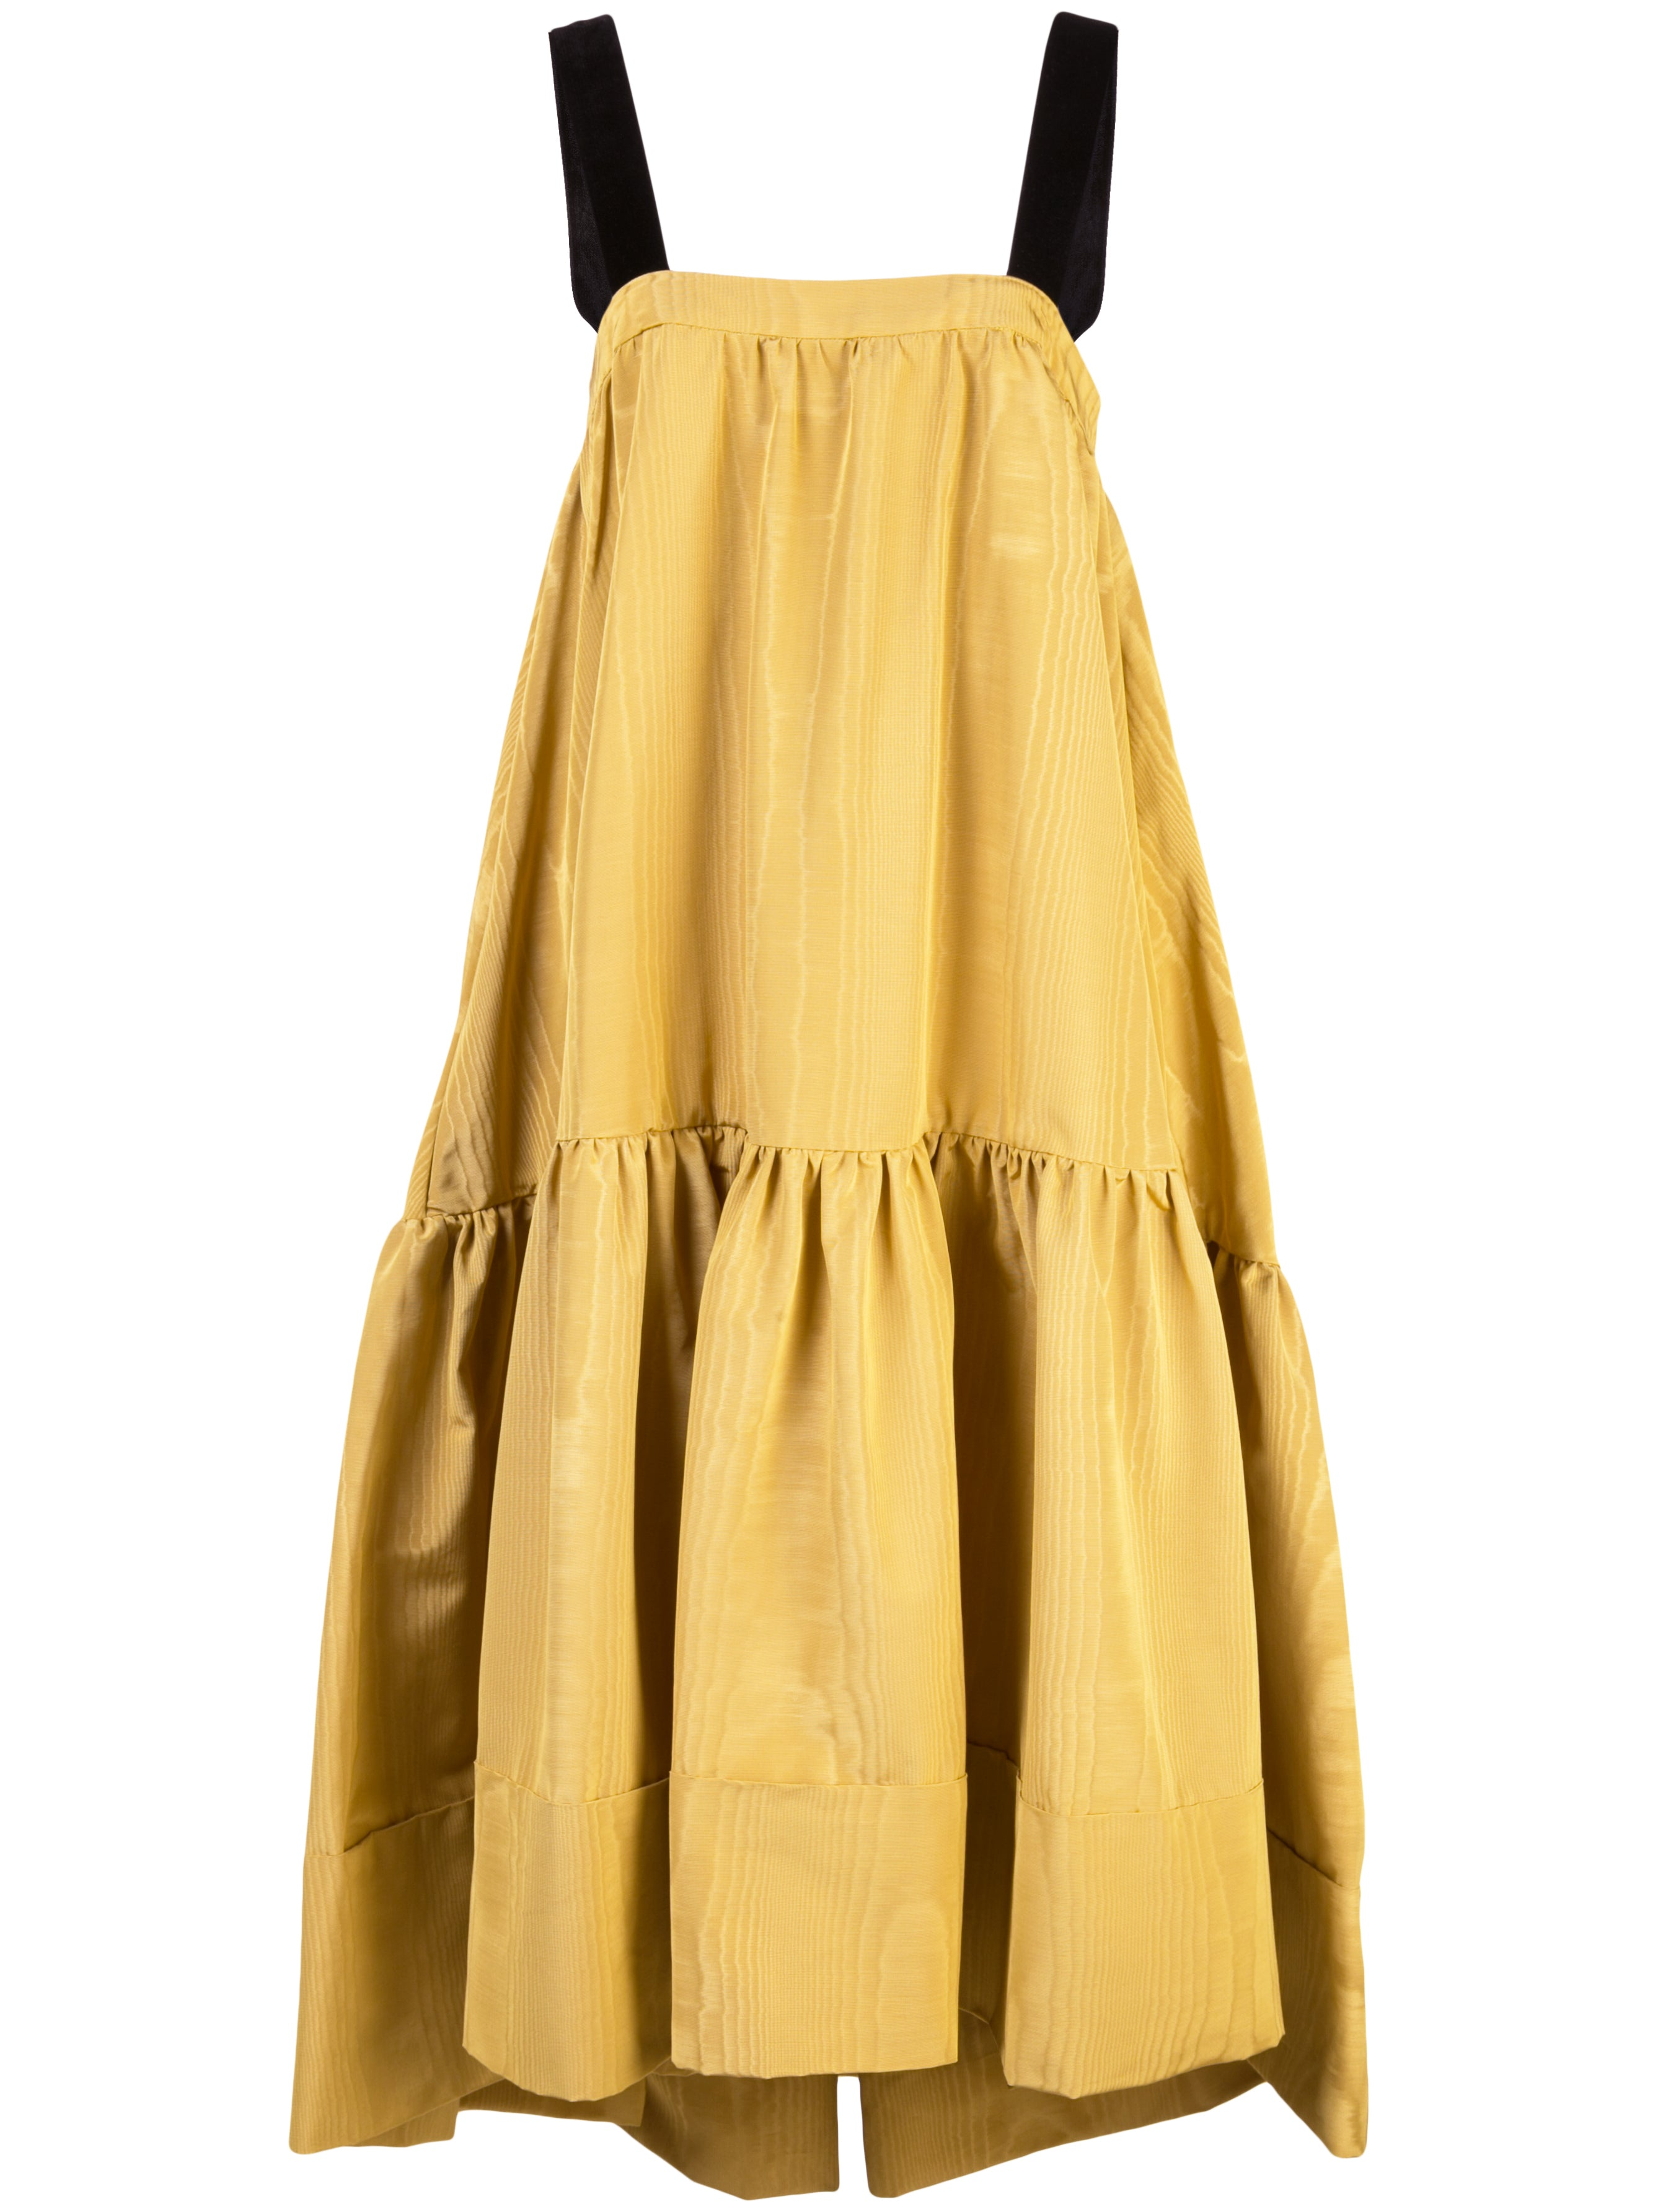 MOIRE TAFFETA DRESS WITH VELVET STRAPS